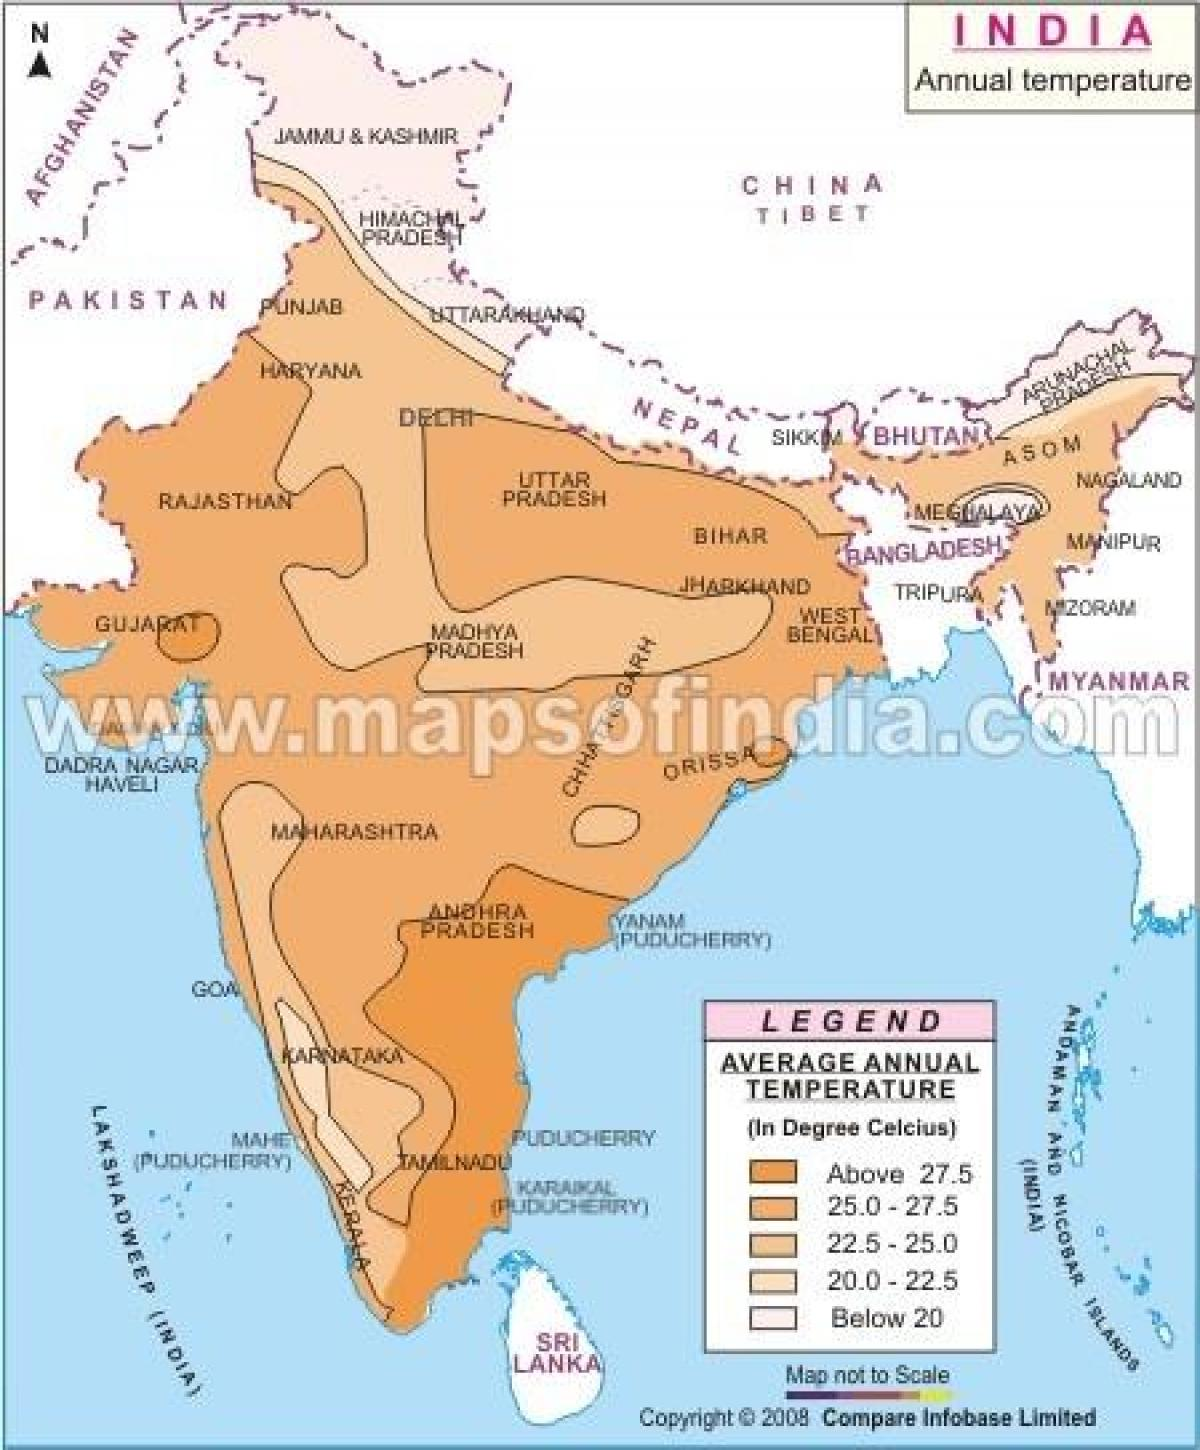 Map Of Asia Today.India Temperature Map Today India Temperature Today Map Southern